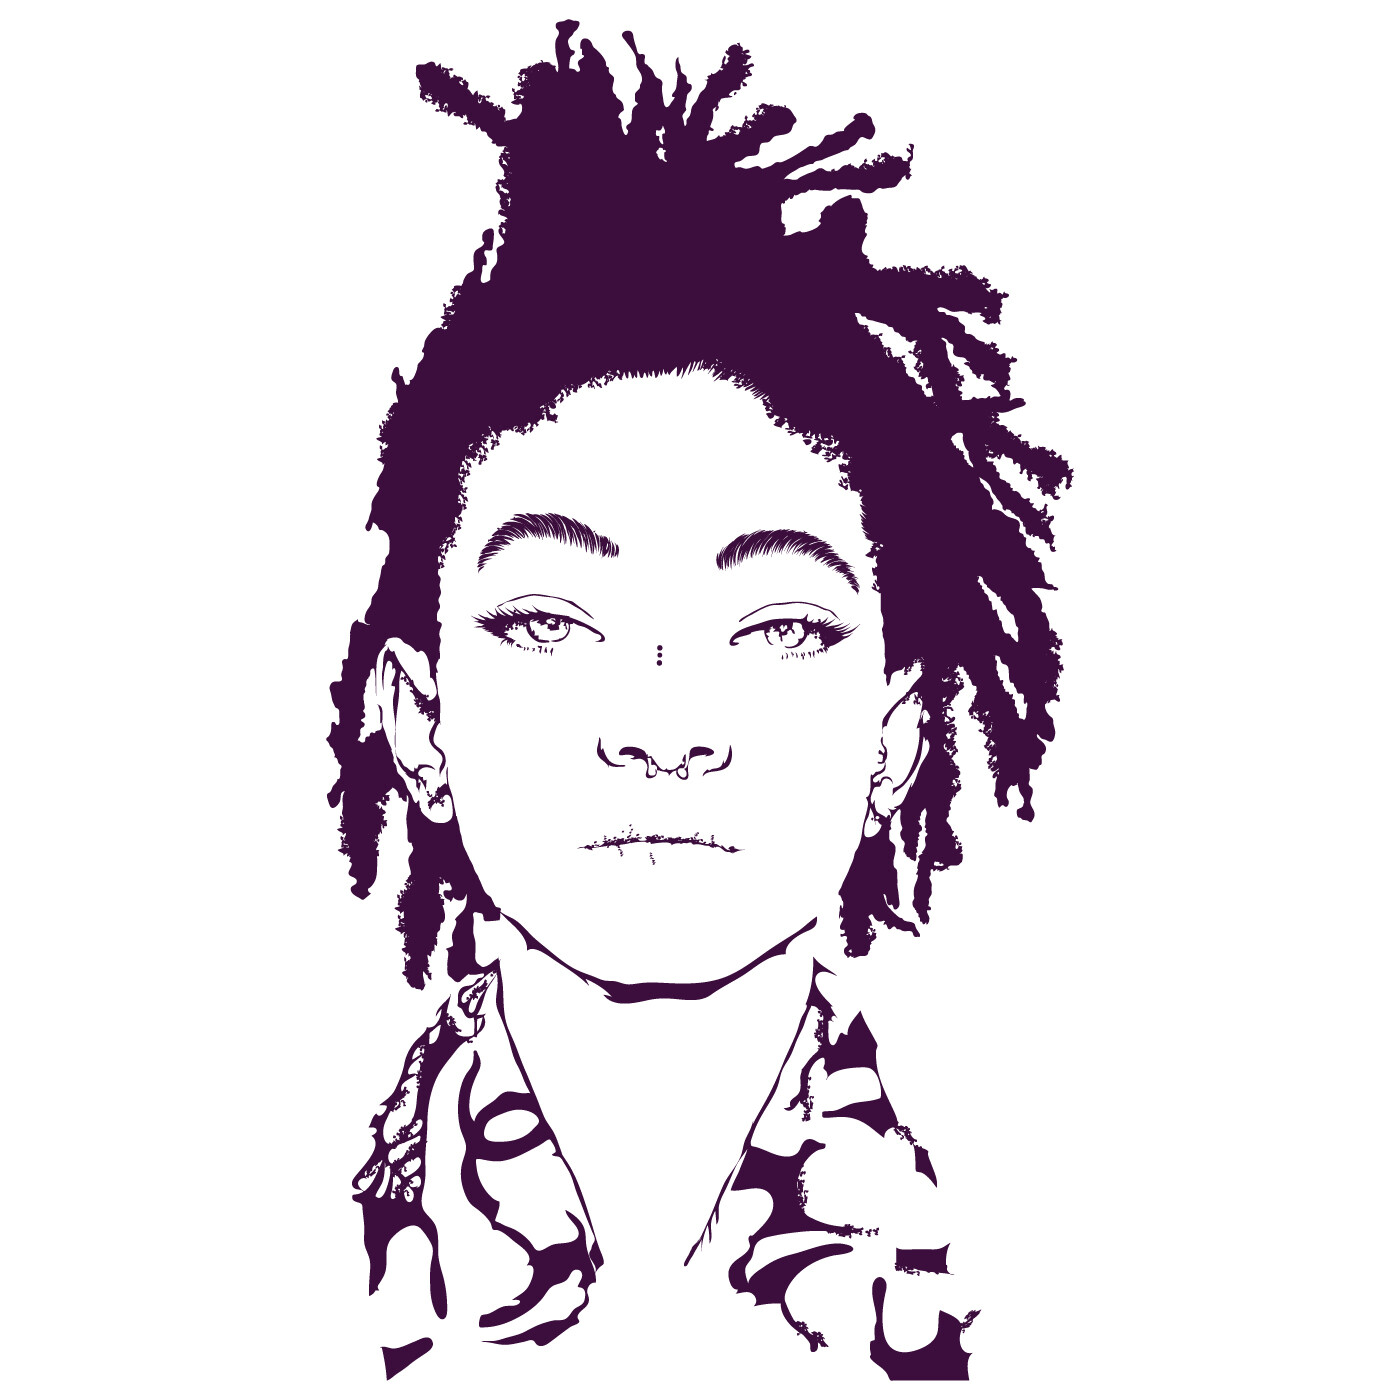 Joseph baraka willow smith 02